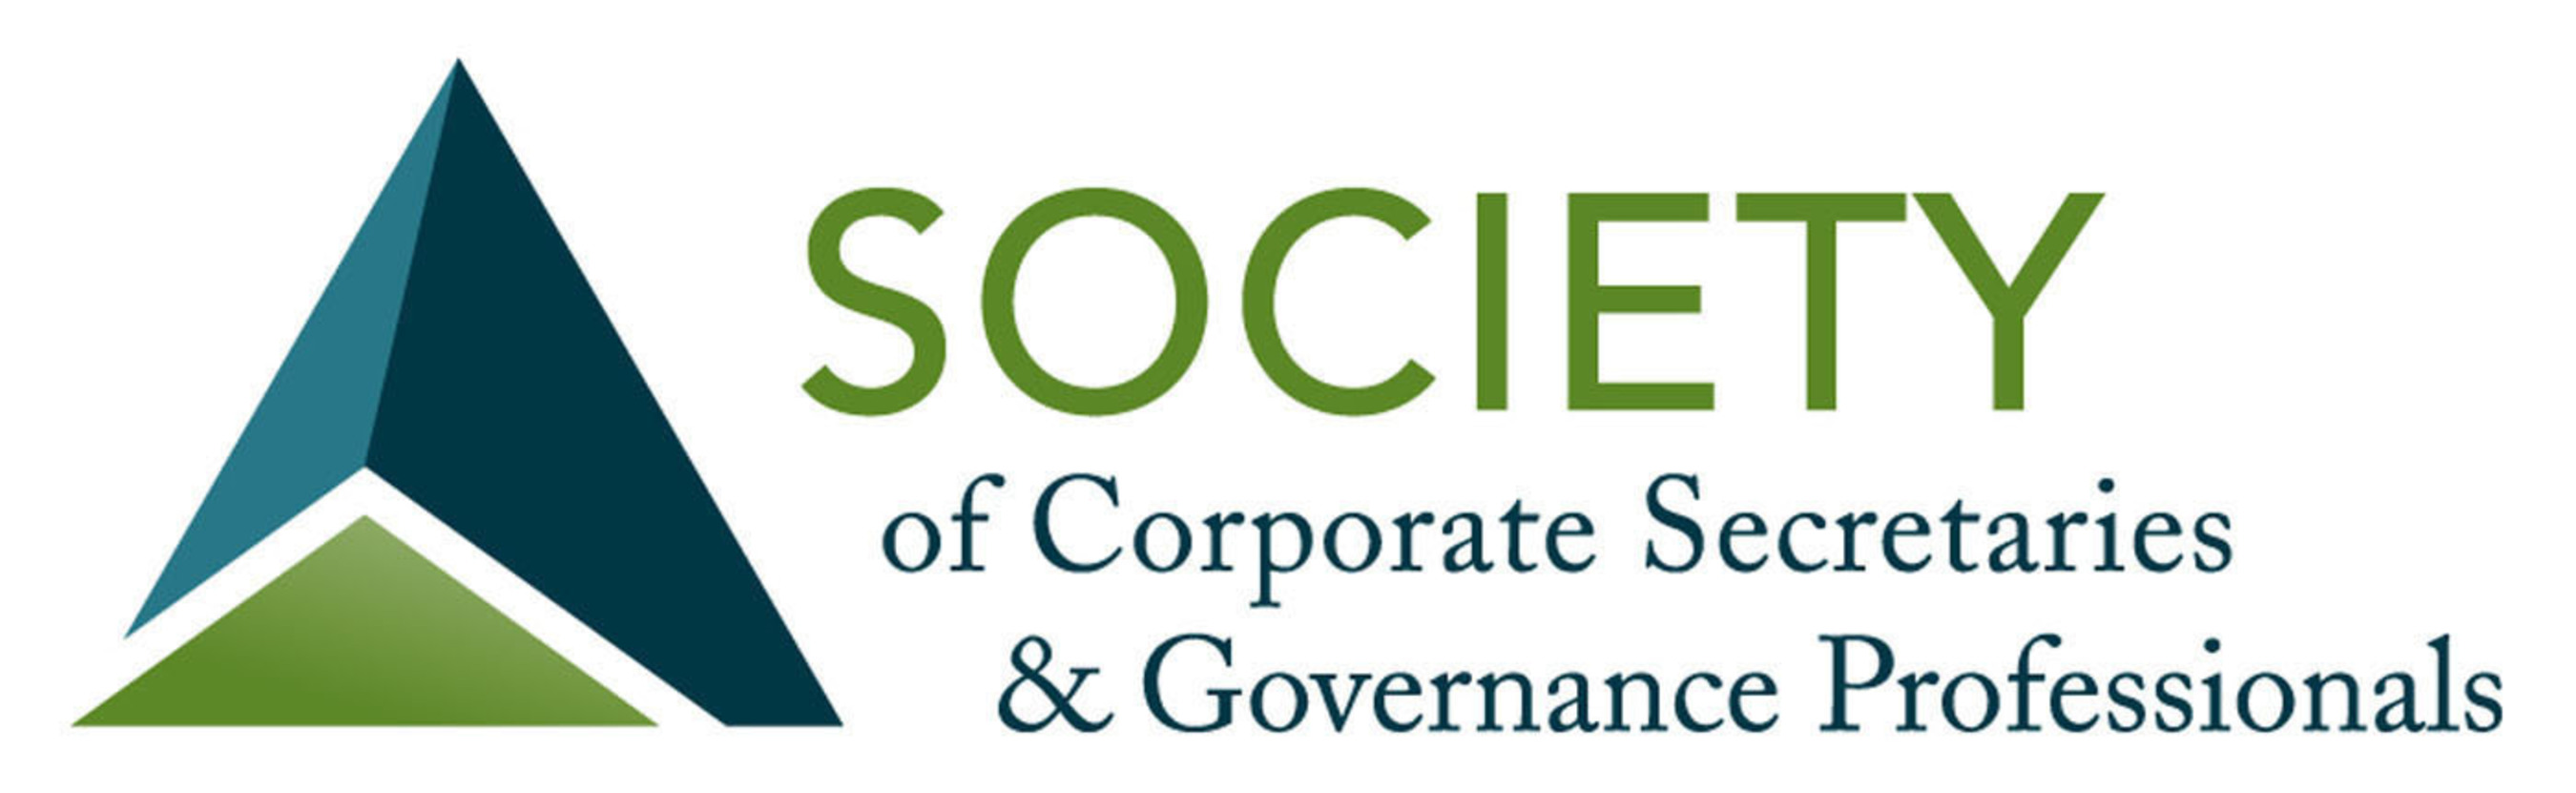 Society of Corporate Secretaries and Governance Professionals